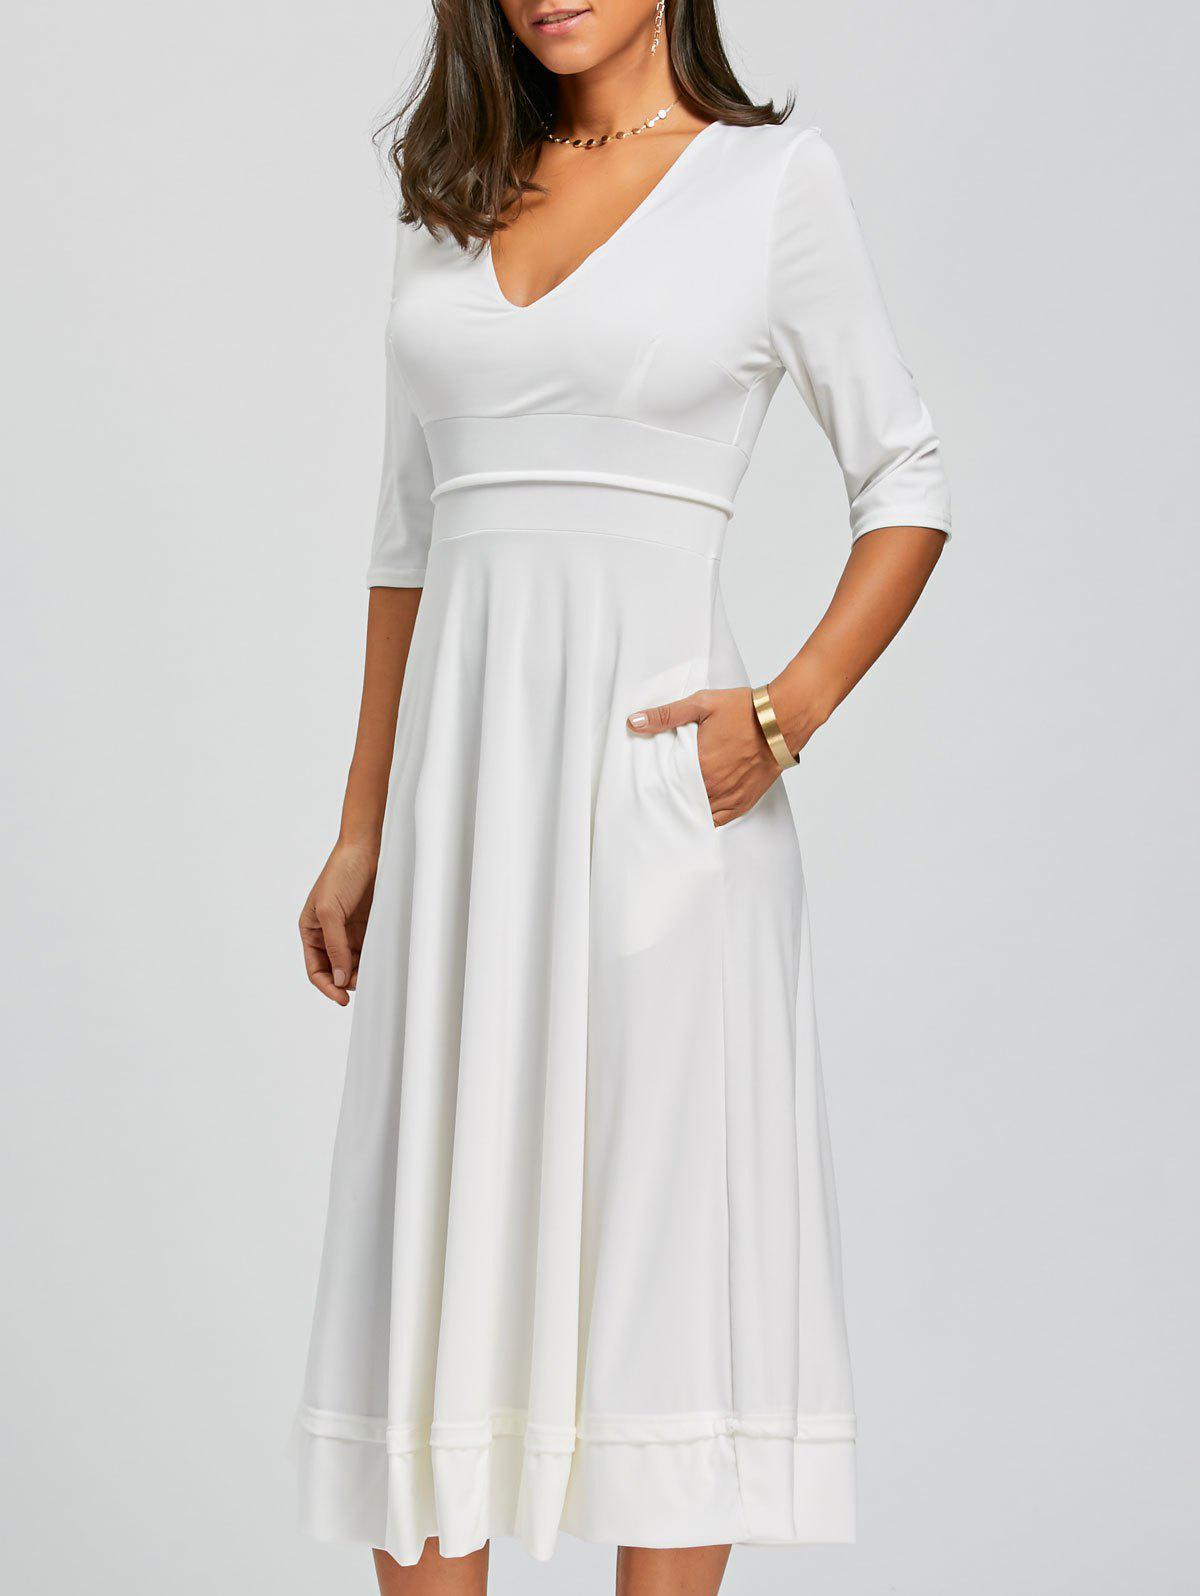 Robe à encolure en V - Blanc L